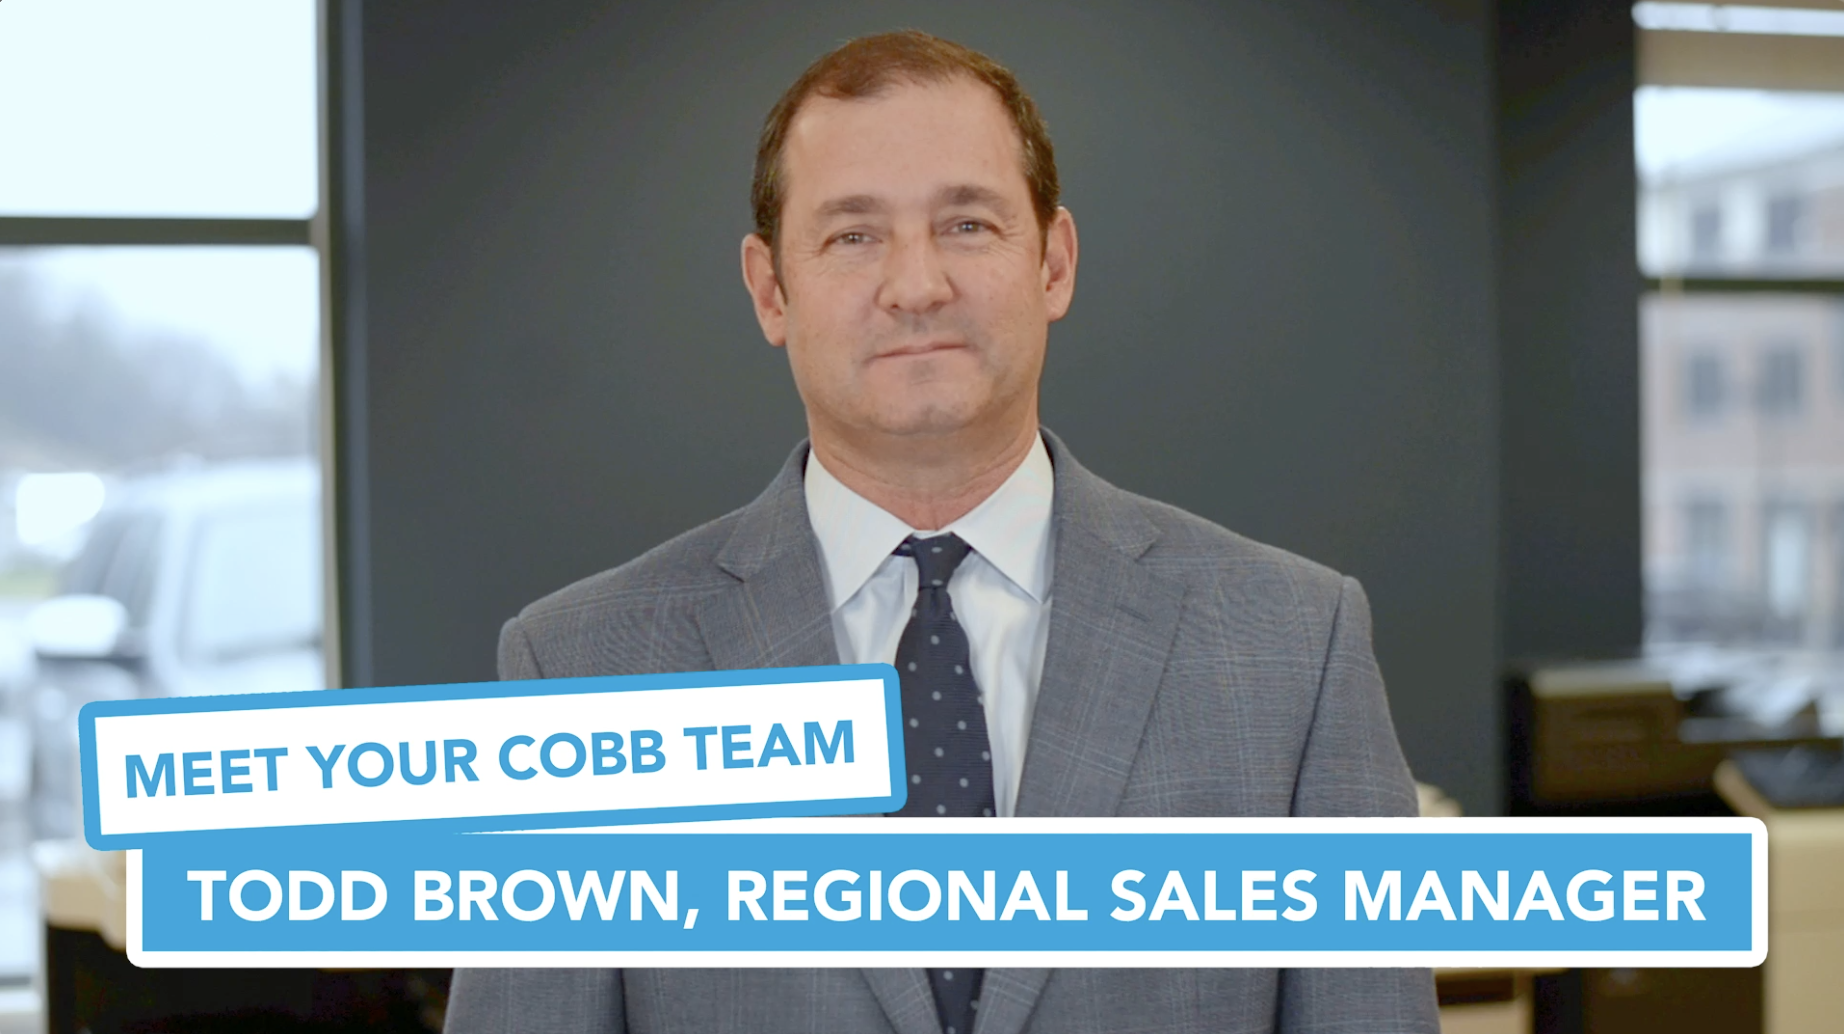 Meet Your Cobb Team: Todd Brown, Regional Sales Manager